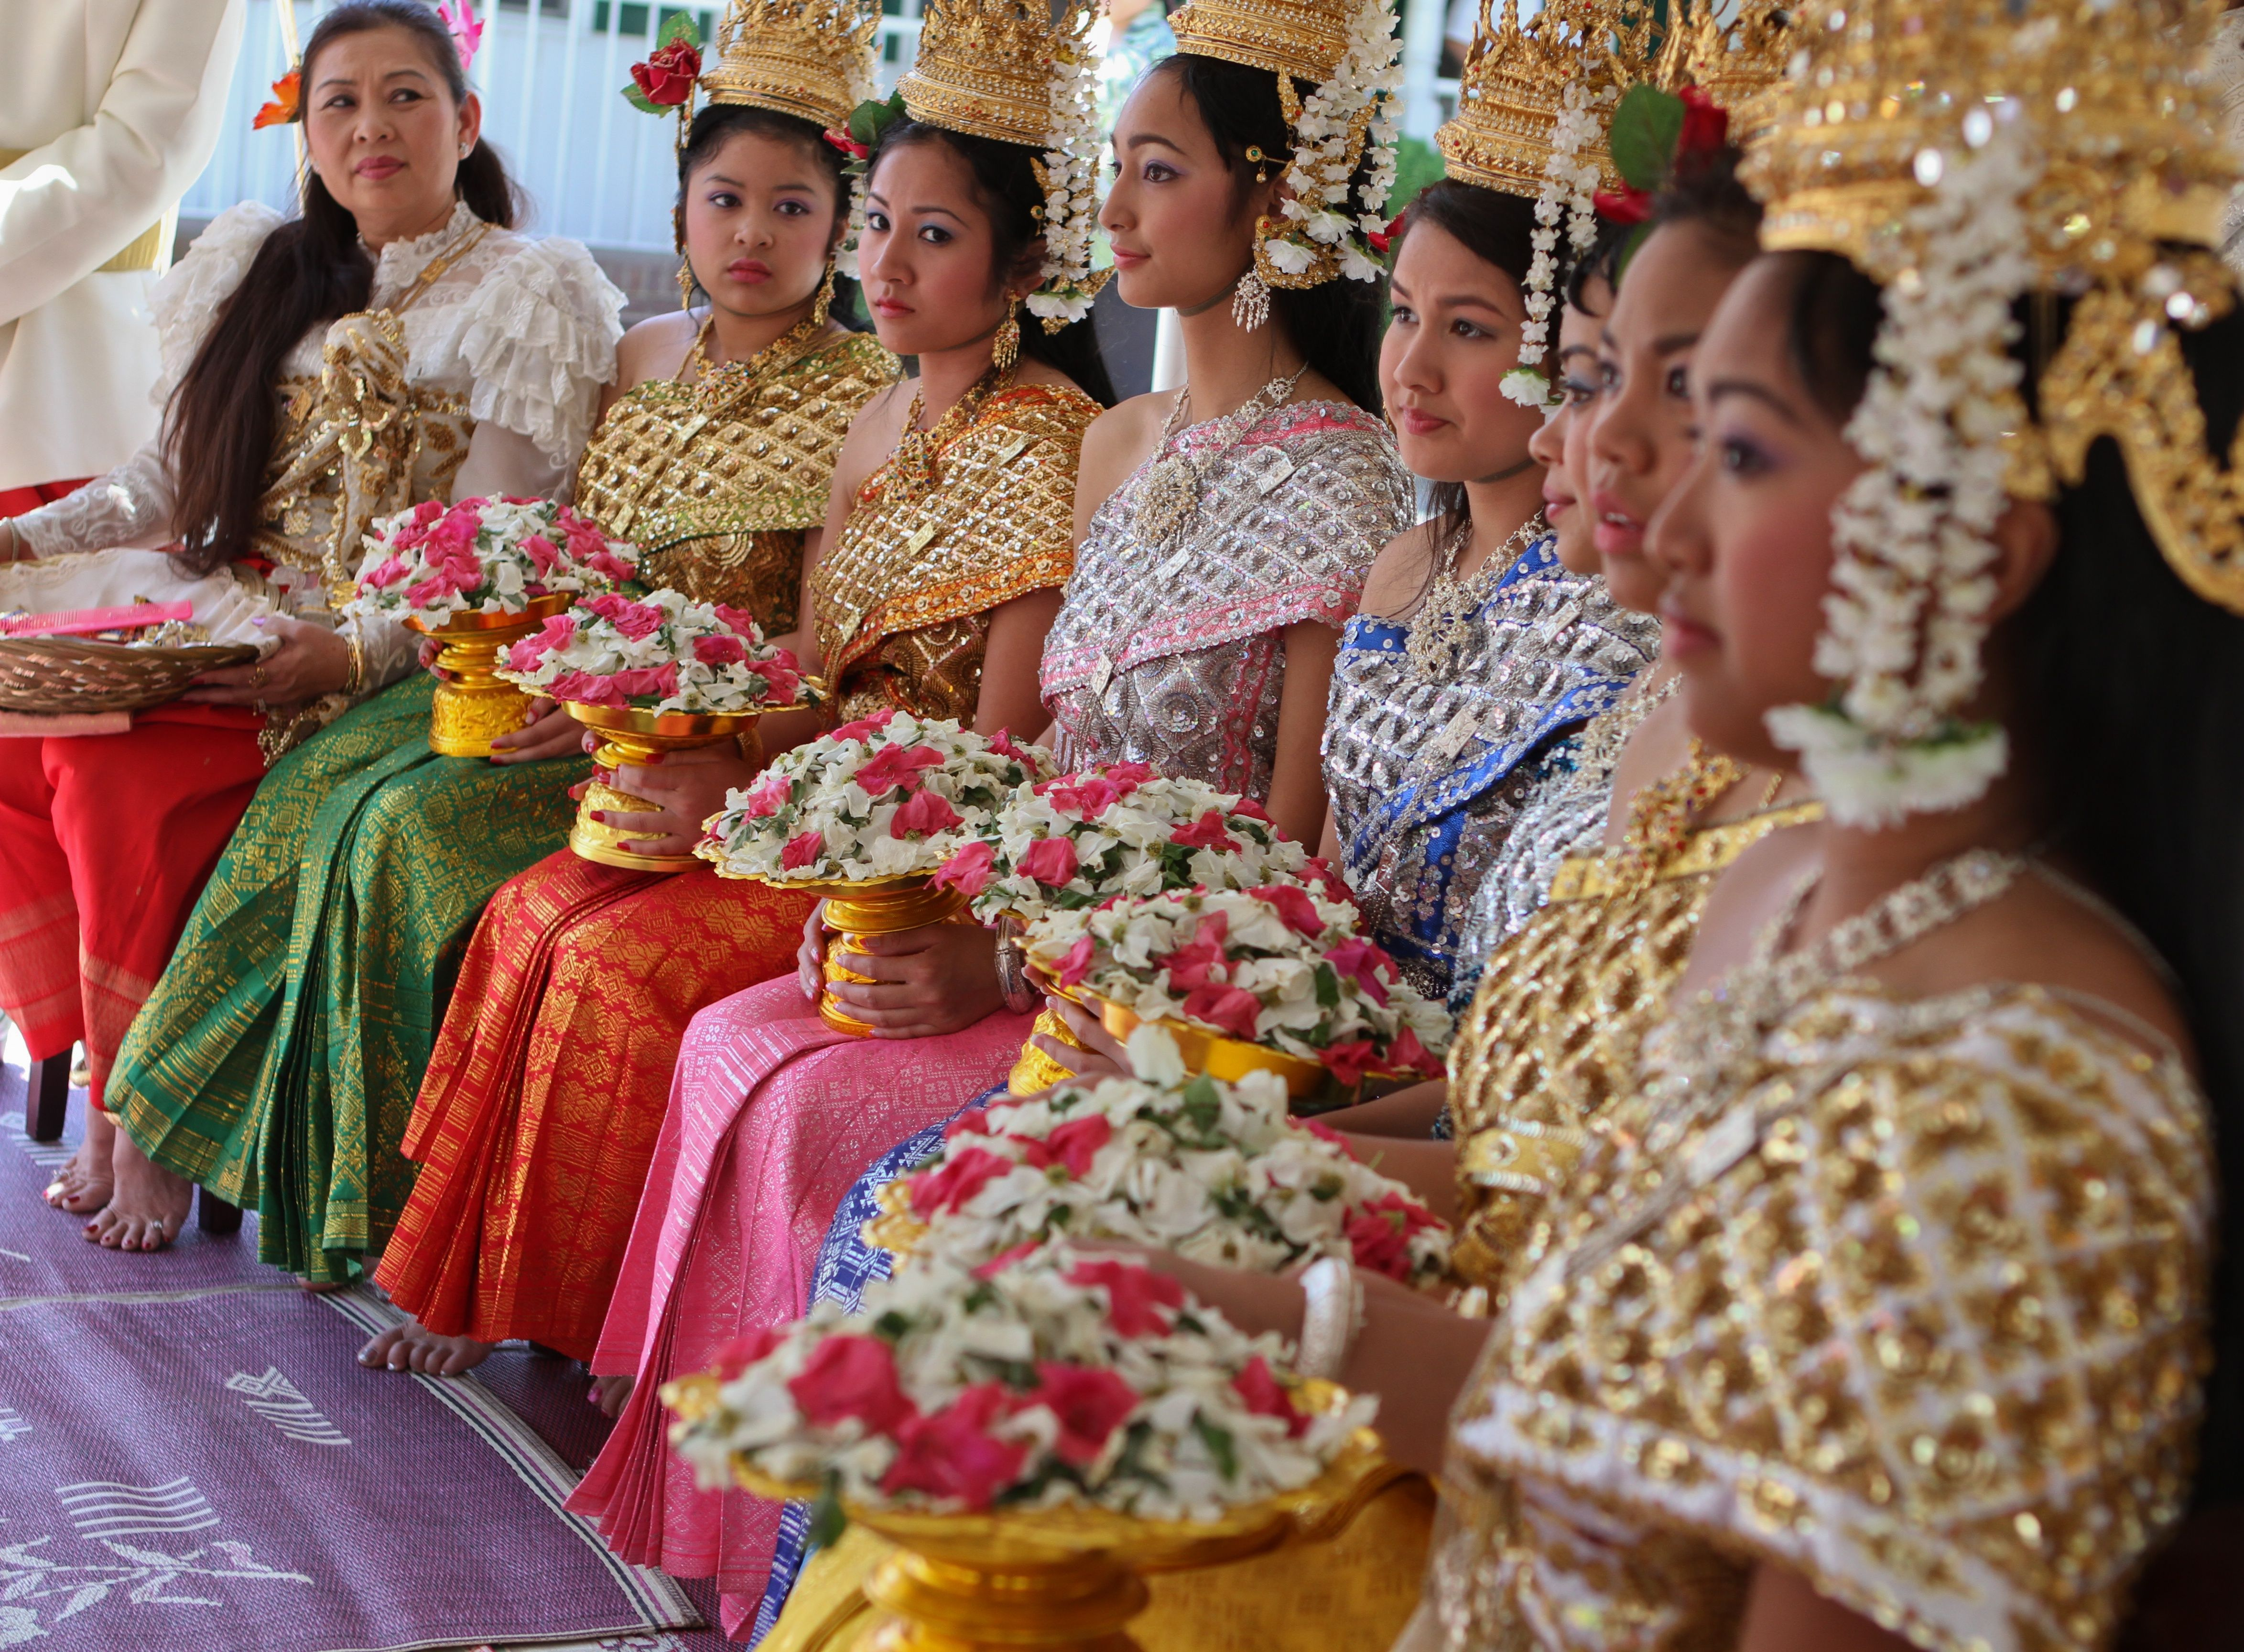 cambodian people and culture - Google Search   Cambodia ...